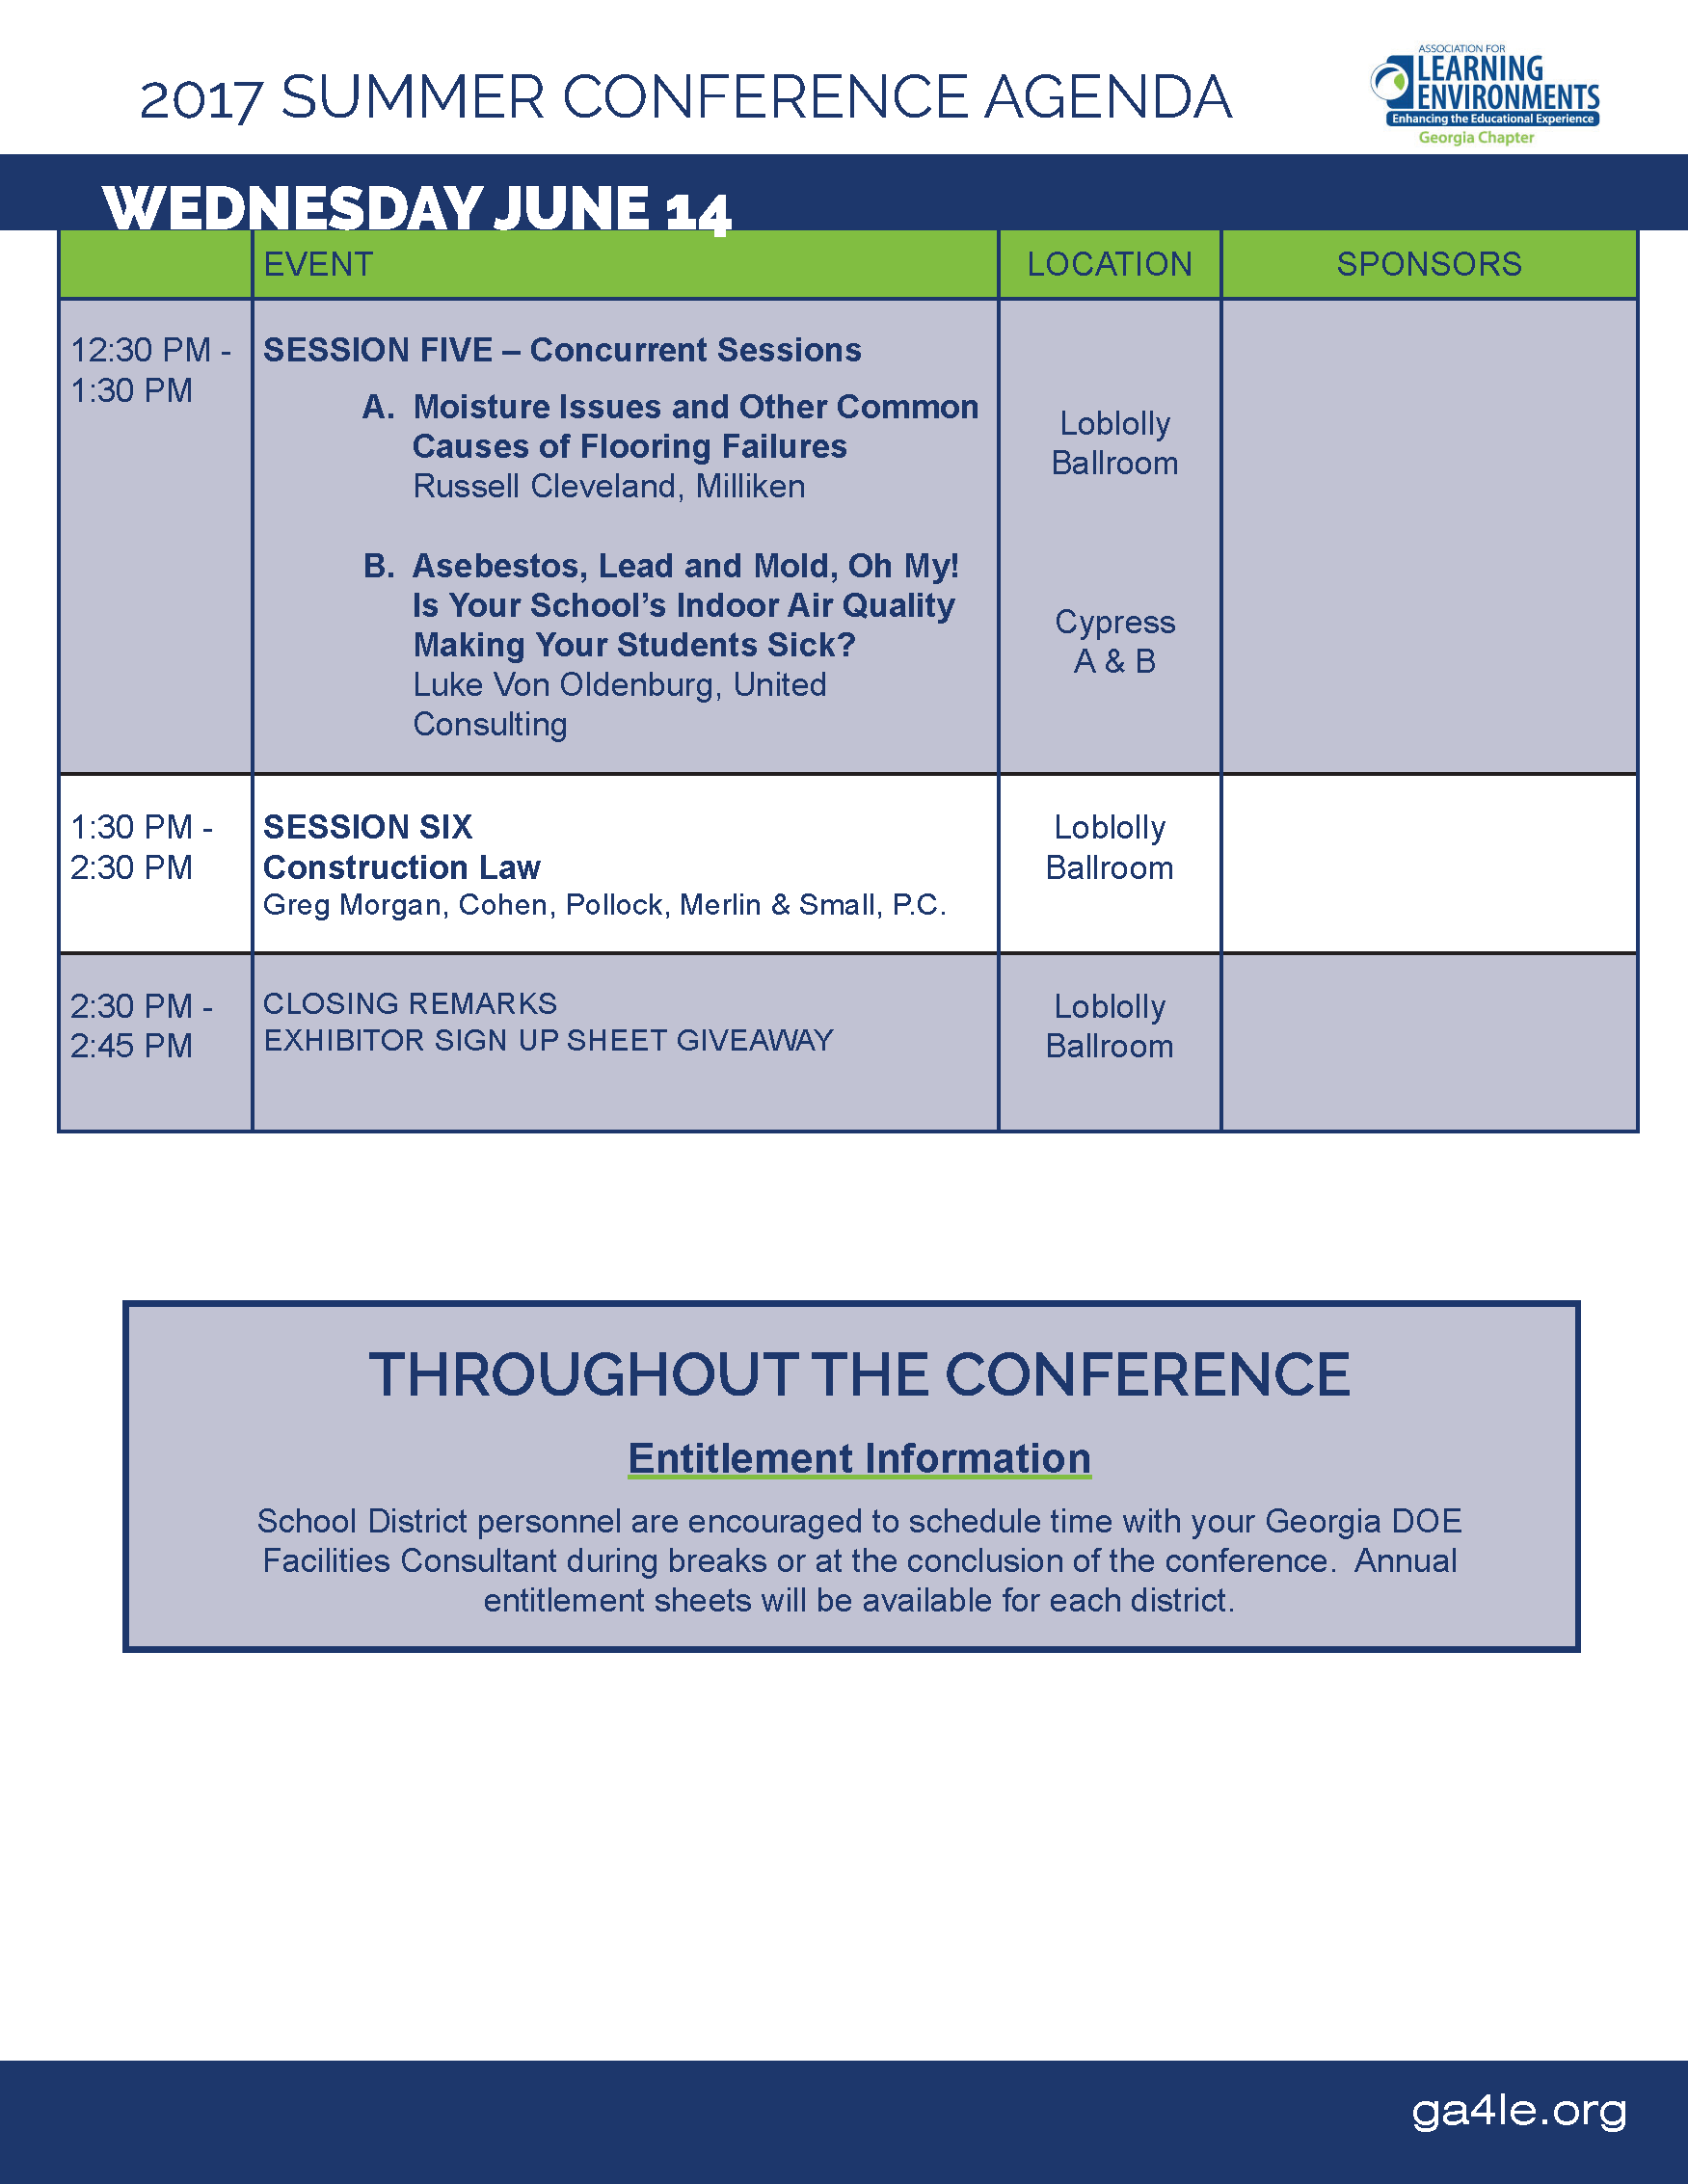 2017 Summer Conference Agenda_Page_6